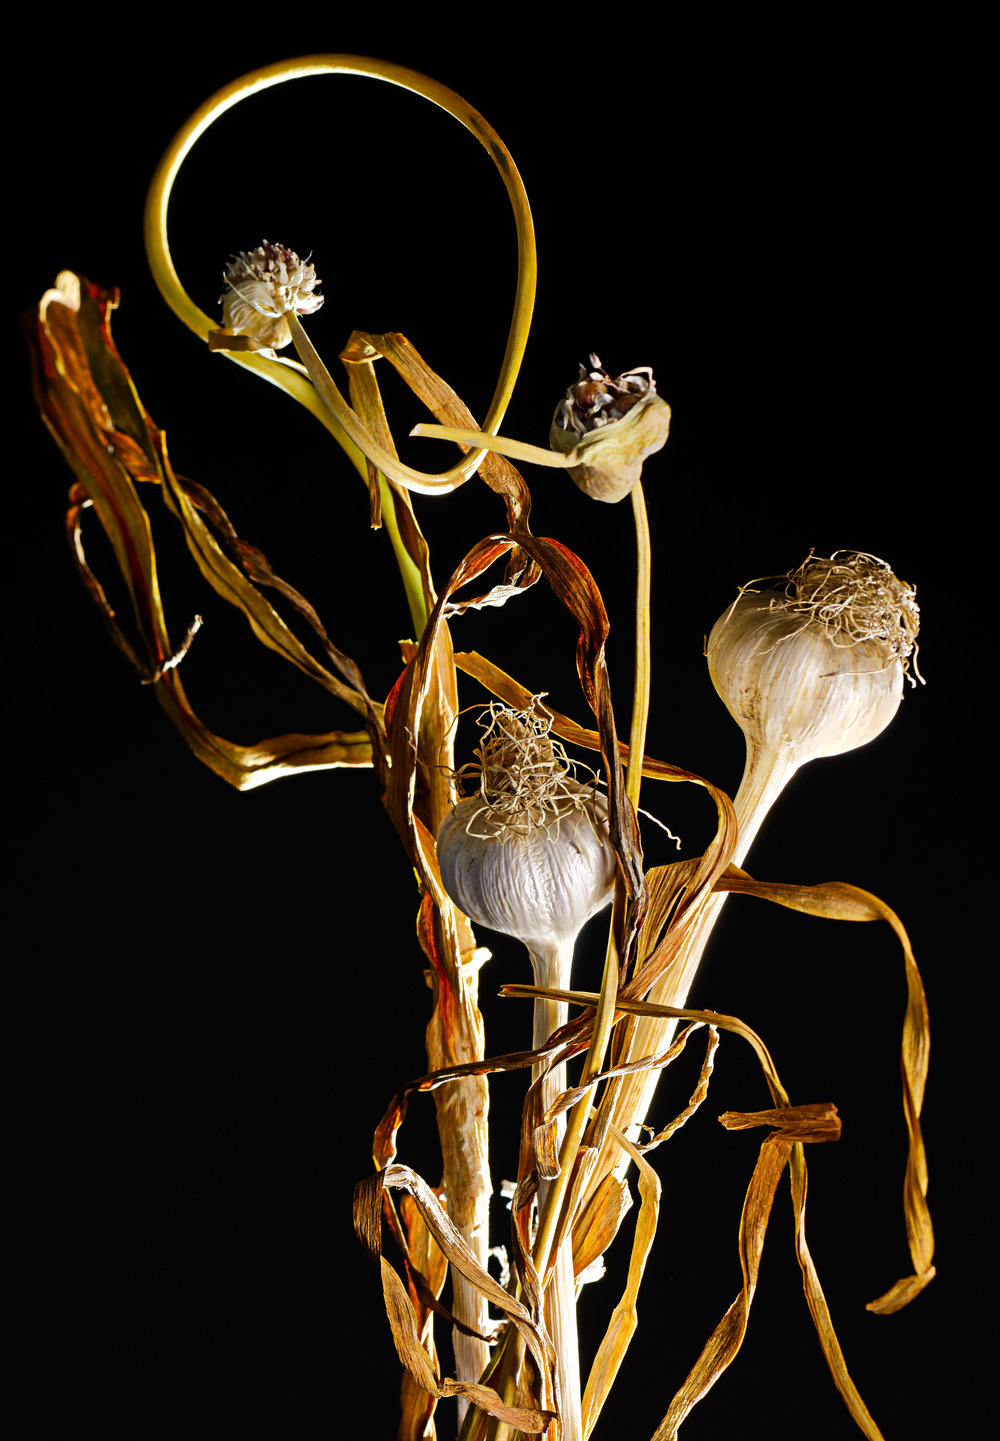 Whole Garlic on Stem